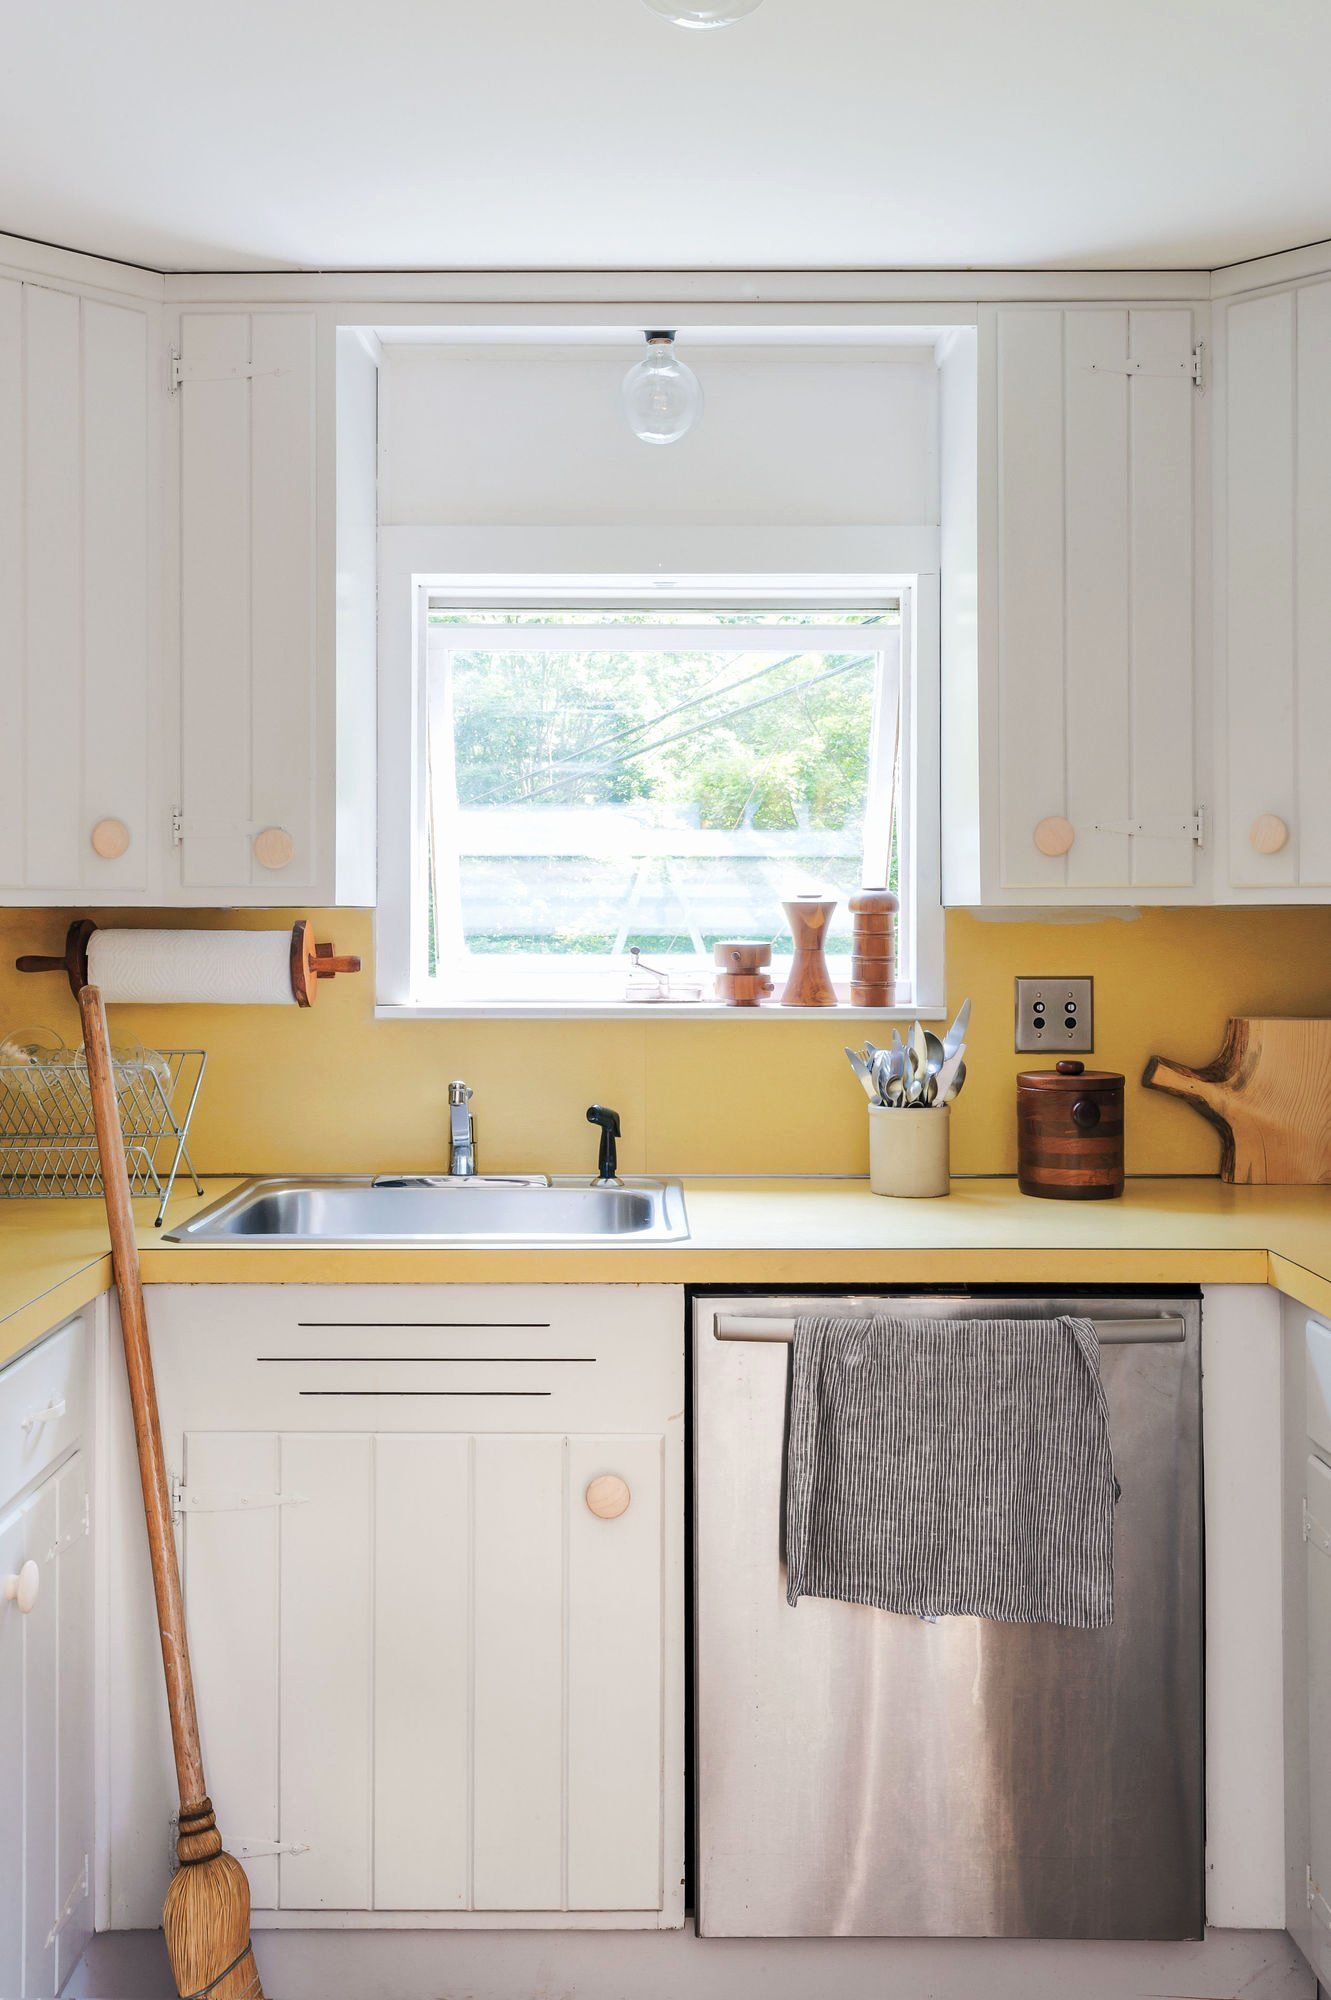 Best Paint For Kitchen Cupboards Inspirational Expert Tips On Painting Your Kitchen Cabin In 2020 Wood Kitchen Cabinets Unfinished Kitchen Cabinets Kitchen Cabinets Uk